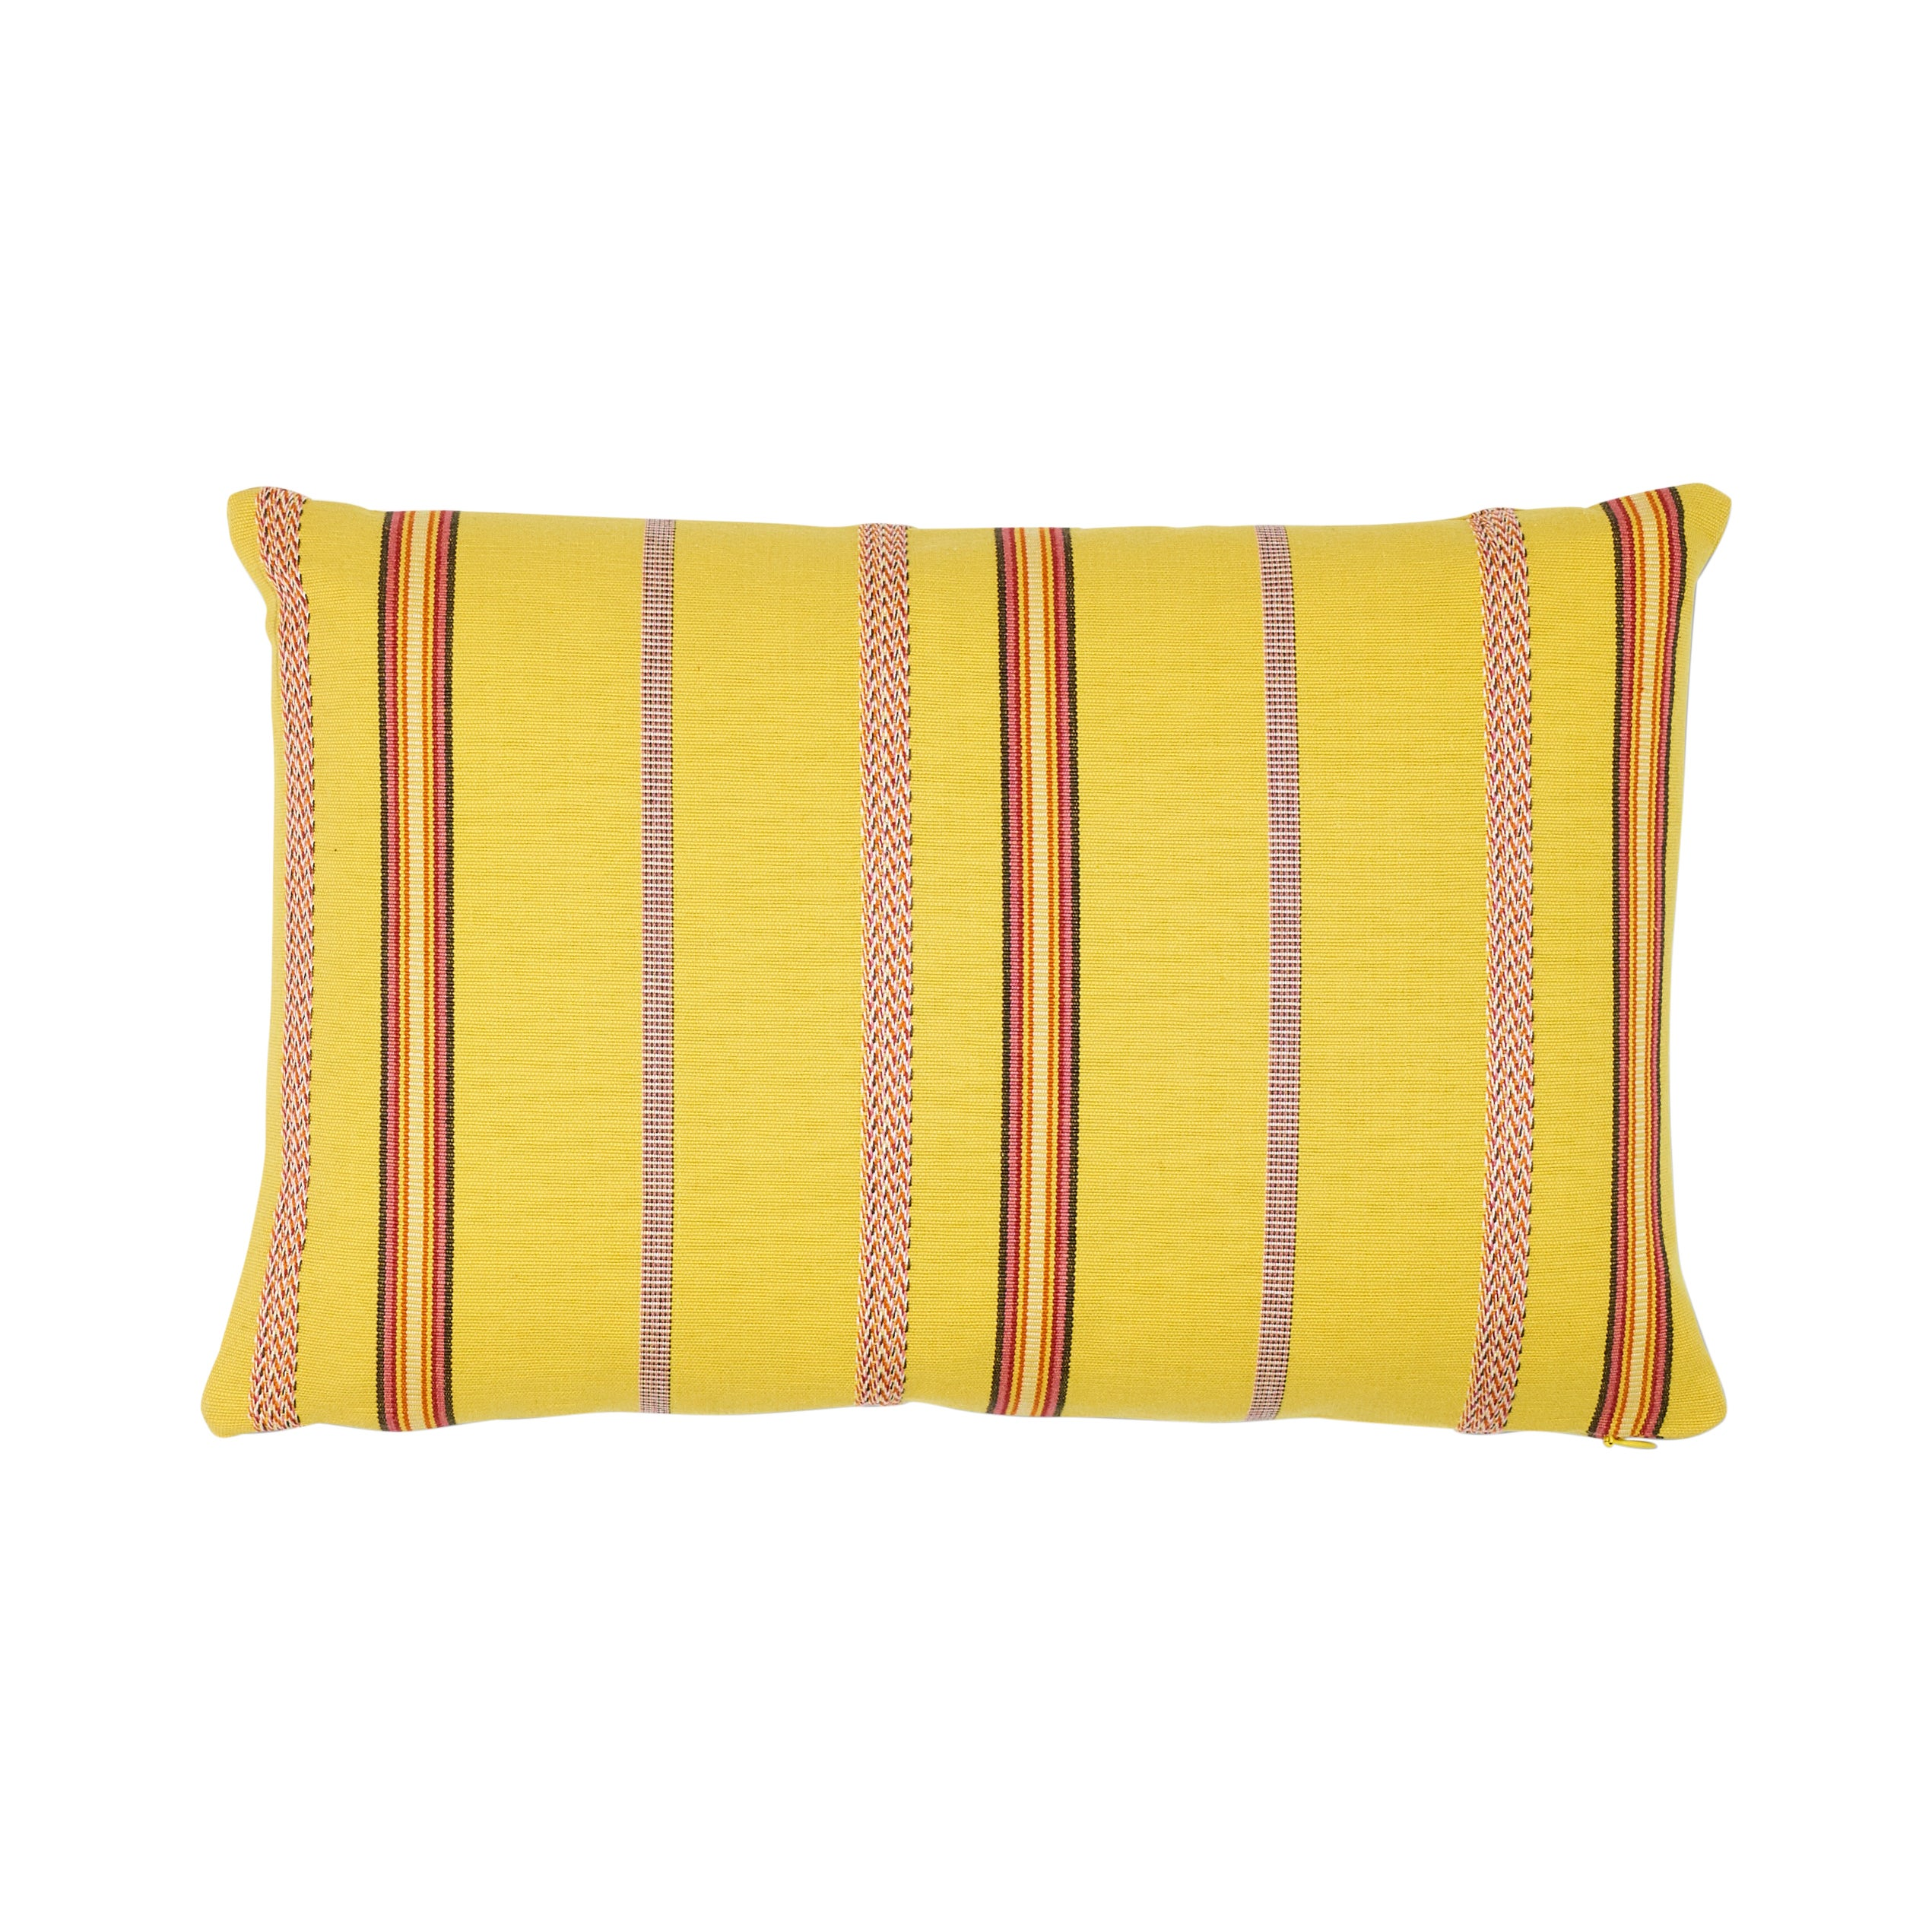 Schumacher Kayenta Yellow Two-Sided Cotton Lumbar Pillow